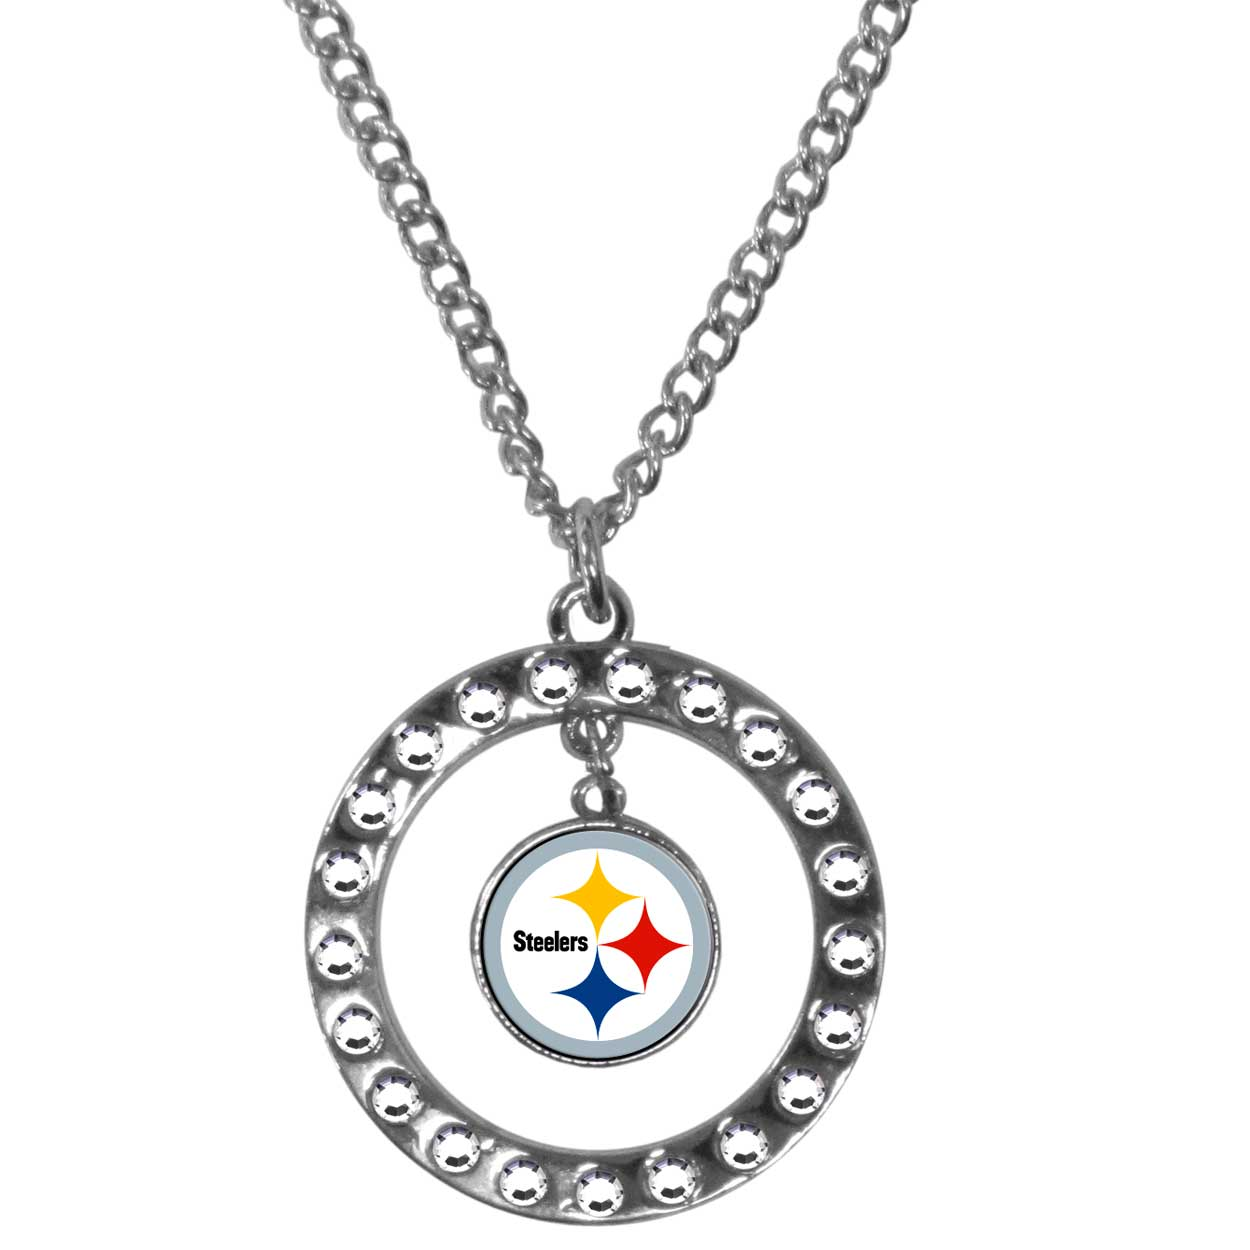 Pittsburgh Steelers Rhinestone Hoop Necklace - Our Pittsburgh Steelers rhinestone hoop necklace comes on an 18 inch chain and features a hoop covered in rhinestones with a high polish chrome finish and a team logo dangling in the center.